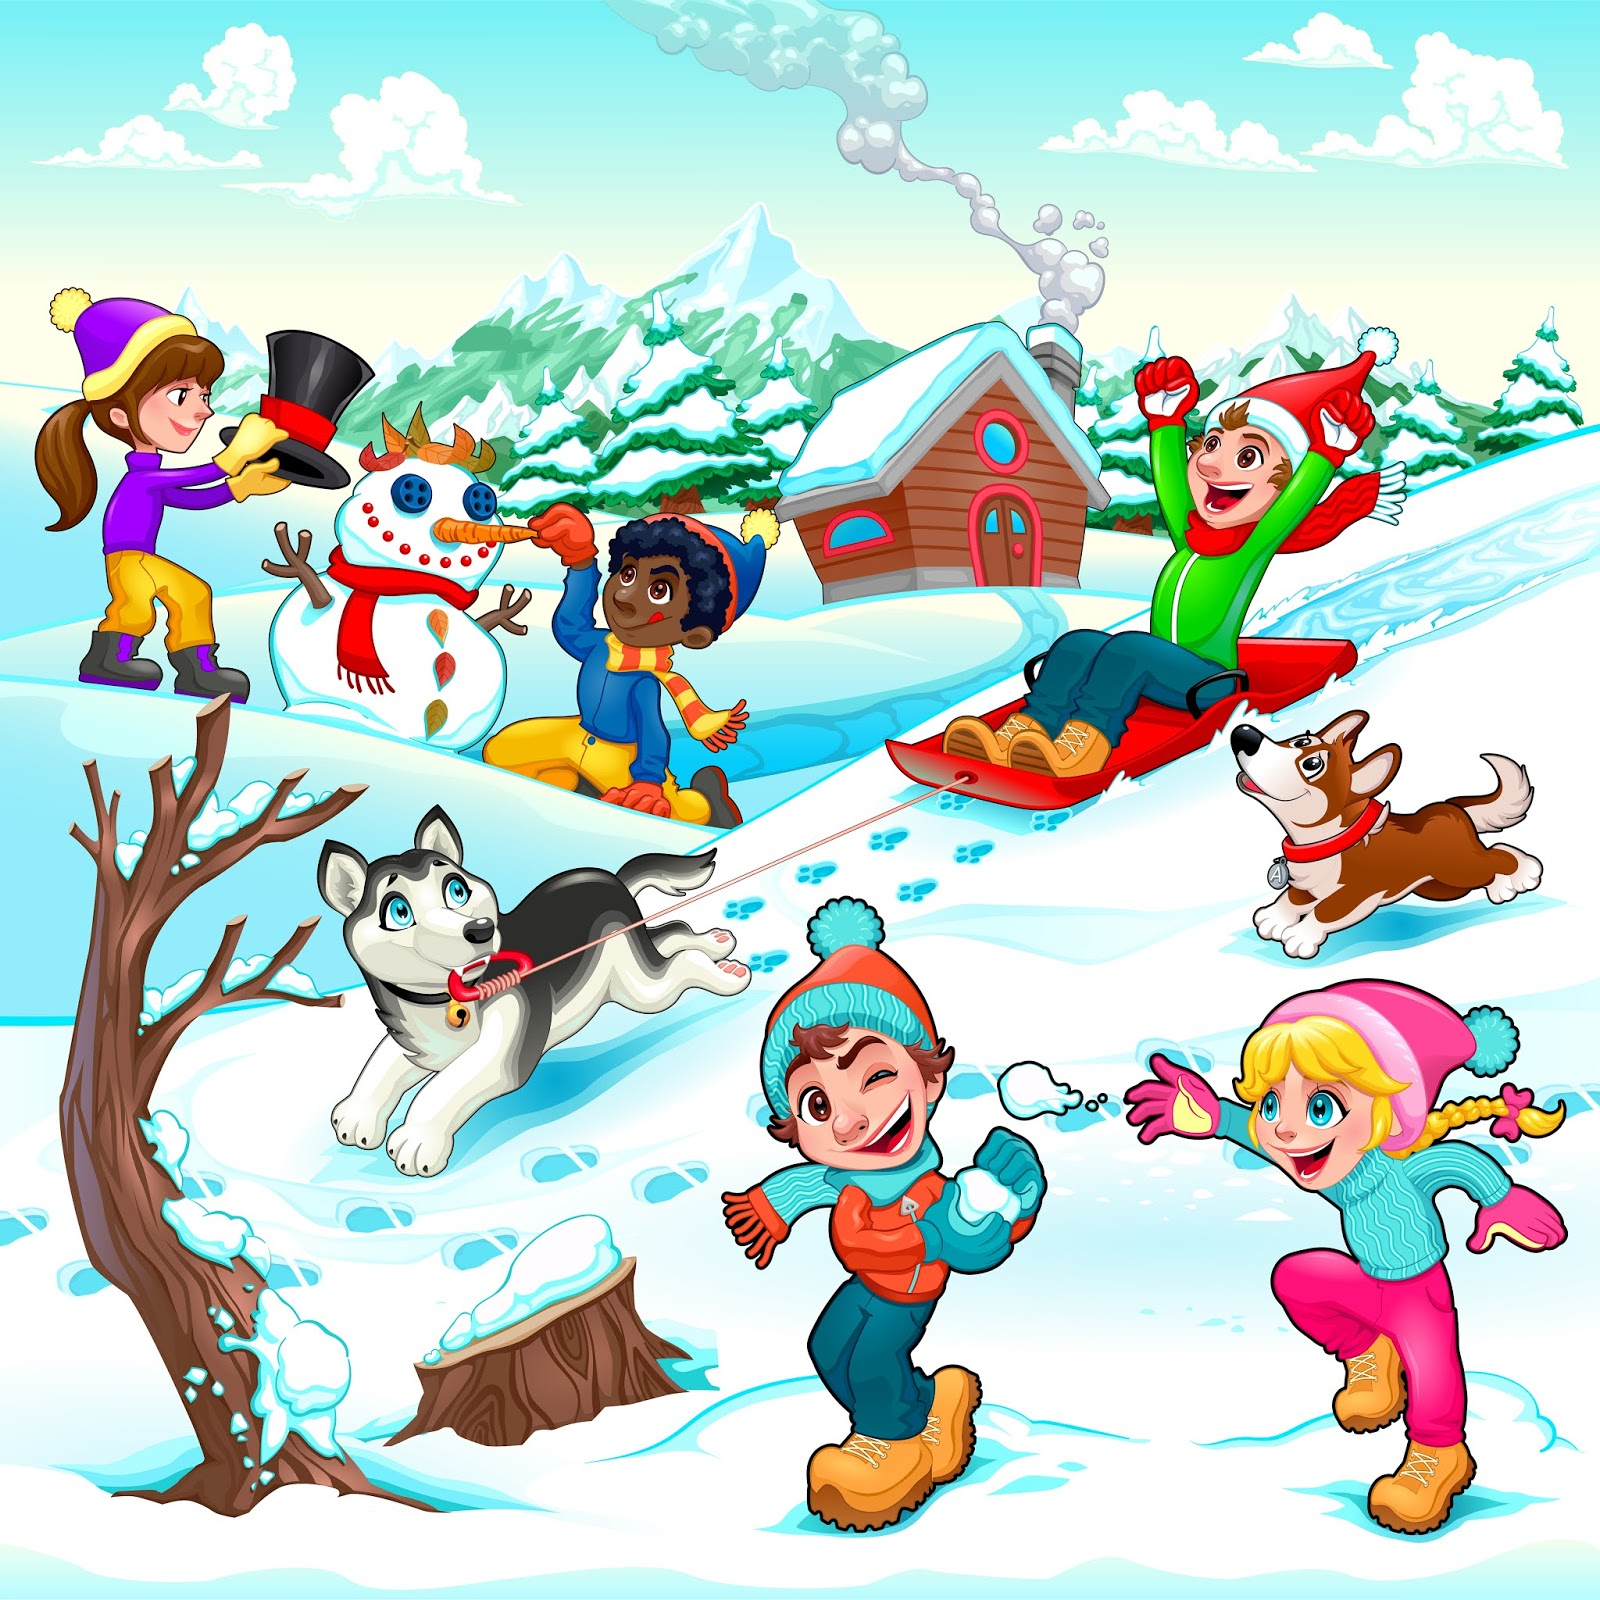 Funny Winter Scene With Children Dogs Cartoon Vector Illustration Free Download Vector CDR, AI, EPS and PNG Formats